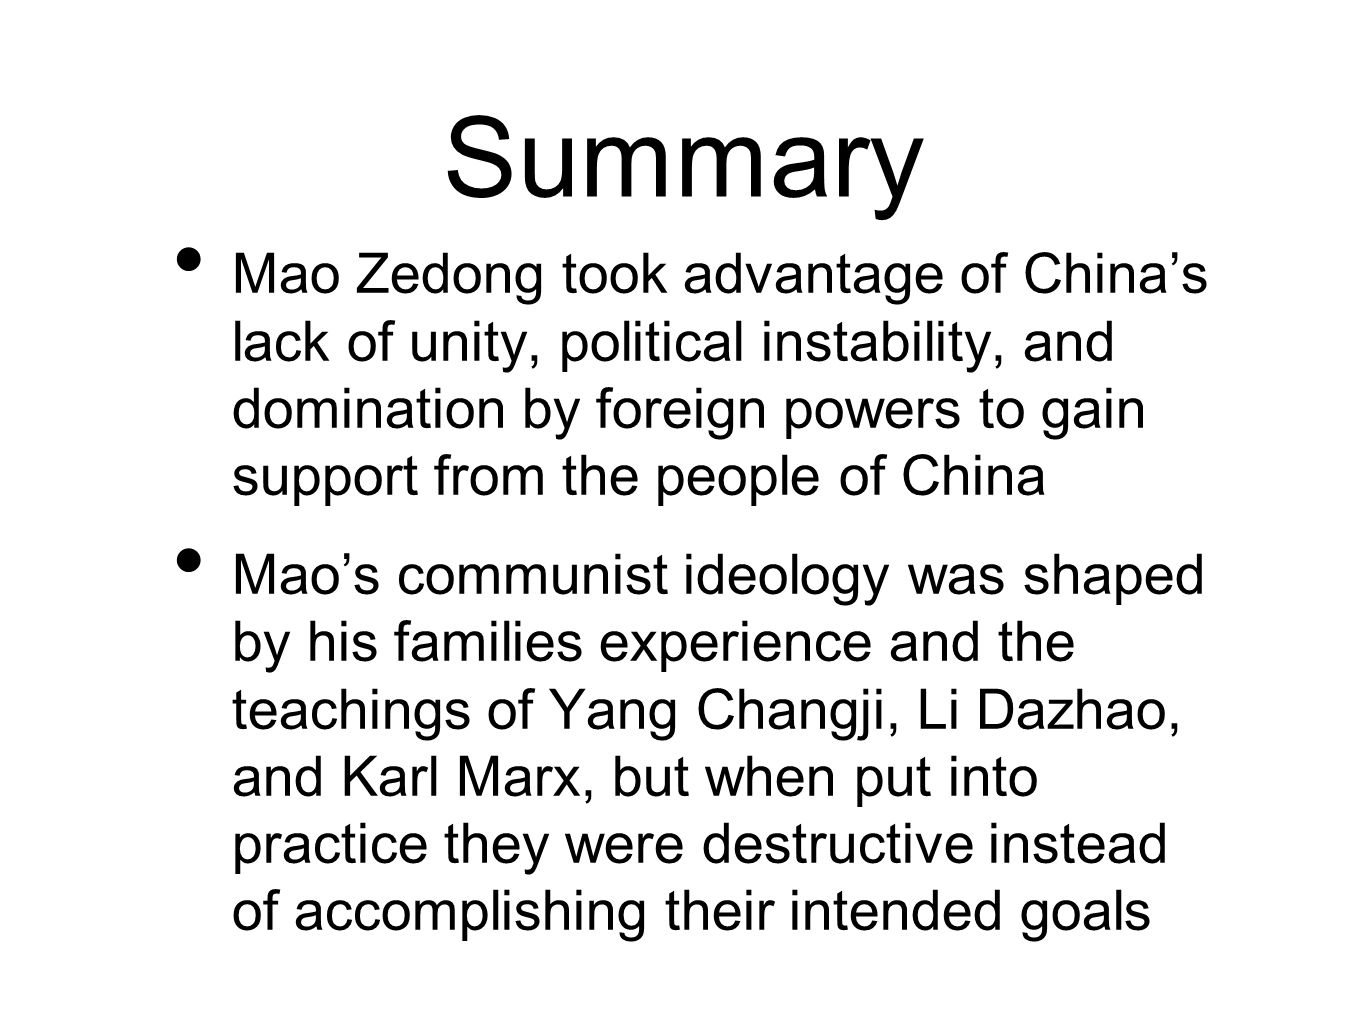 Summary Mao Zedong took advantage of China's lack of unity, political instability, and domination by foreign powers to gain support from the people of